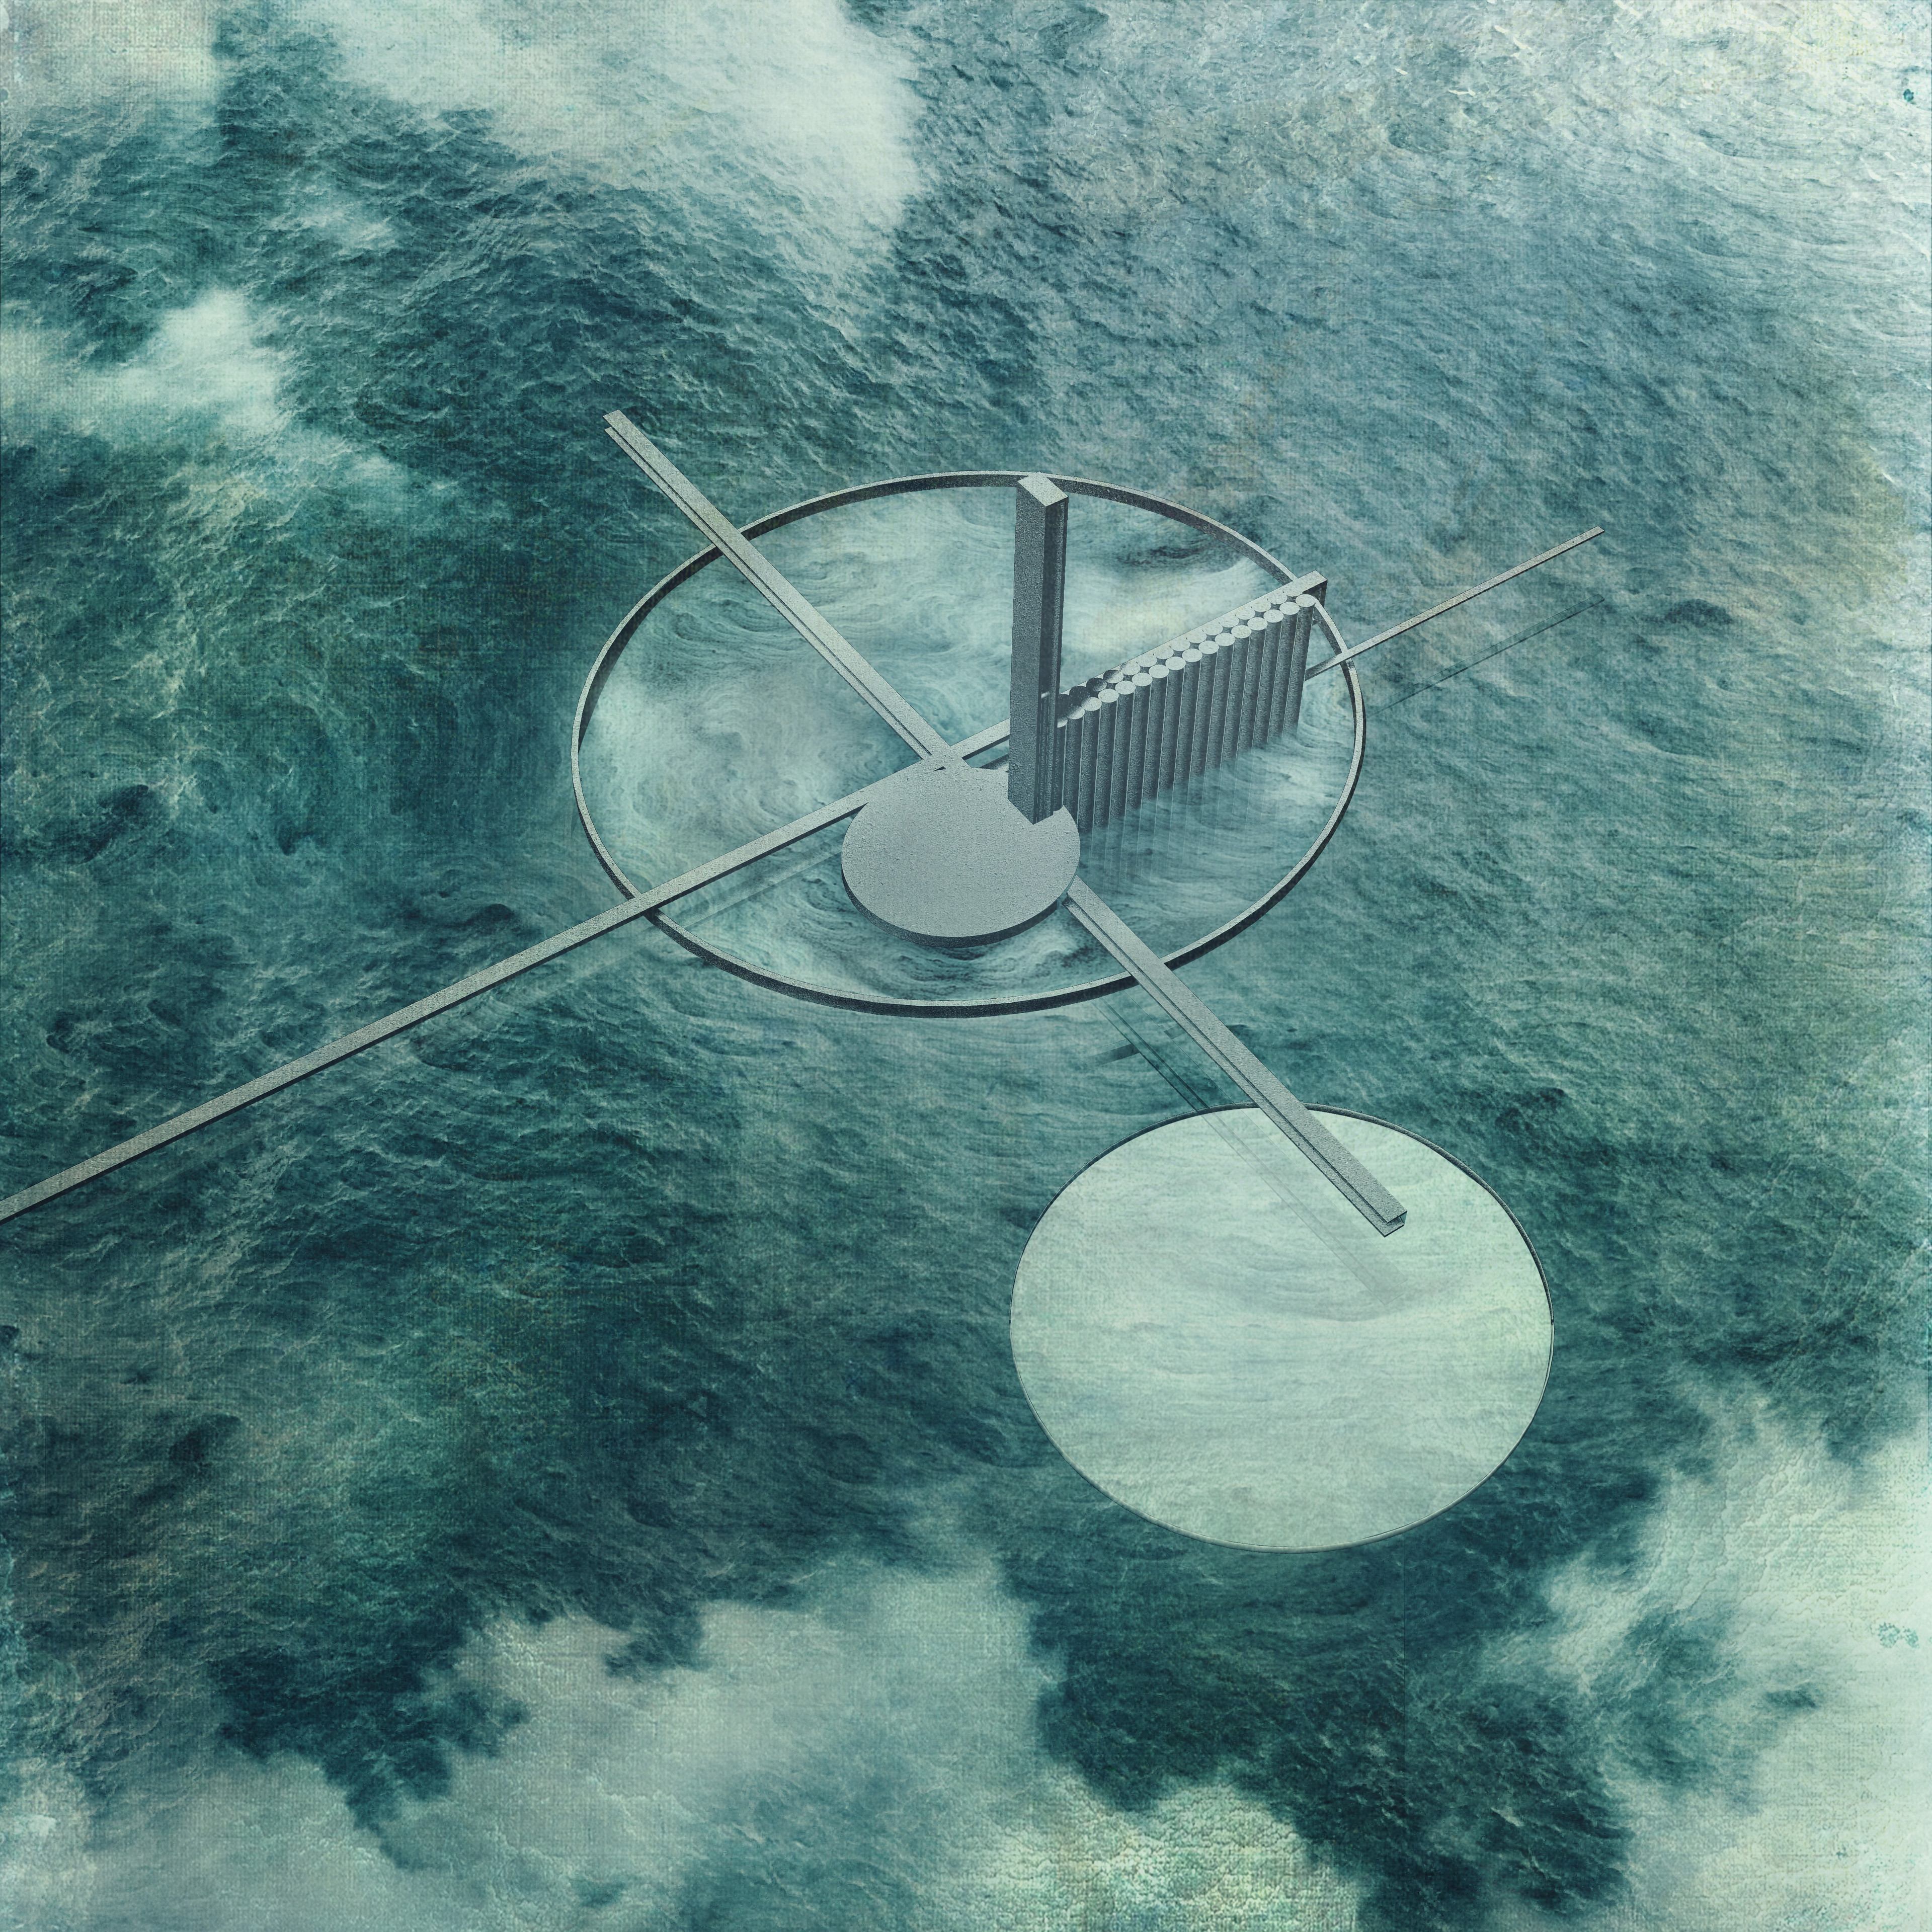 Oceanic Architecture - Day Aerial Concept